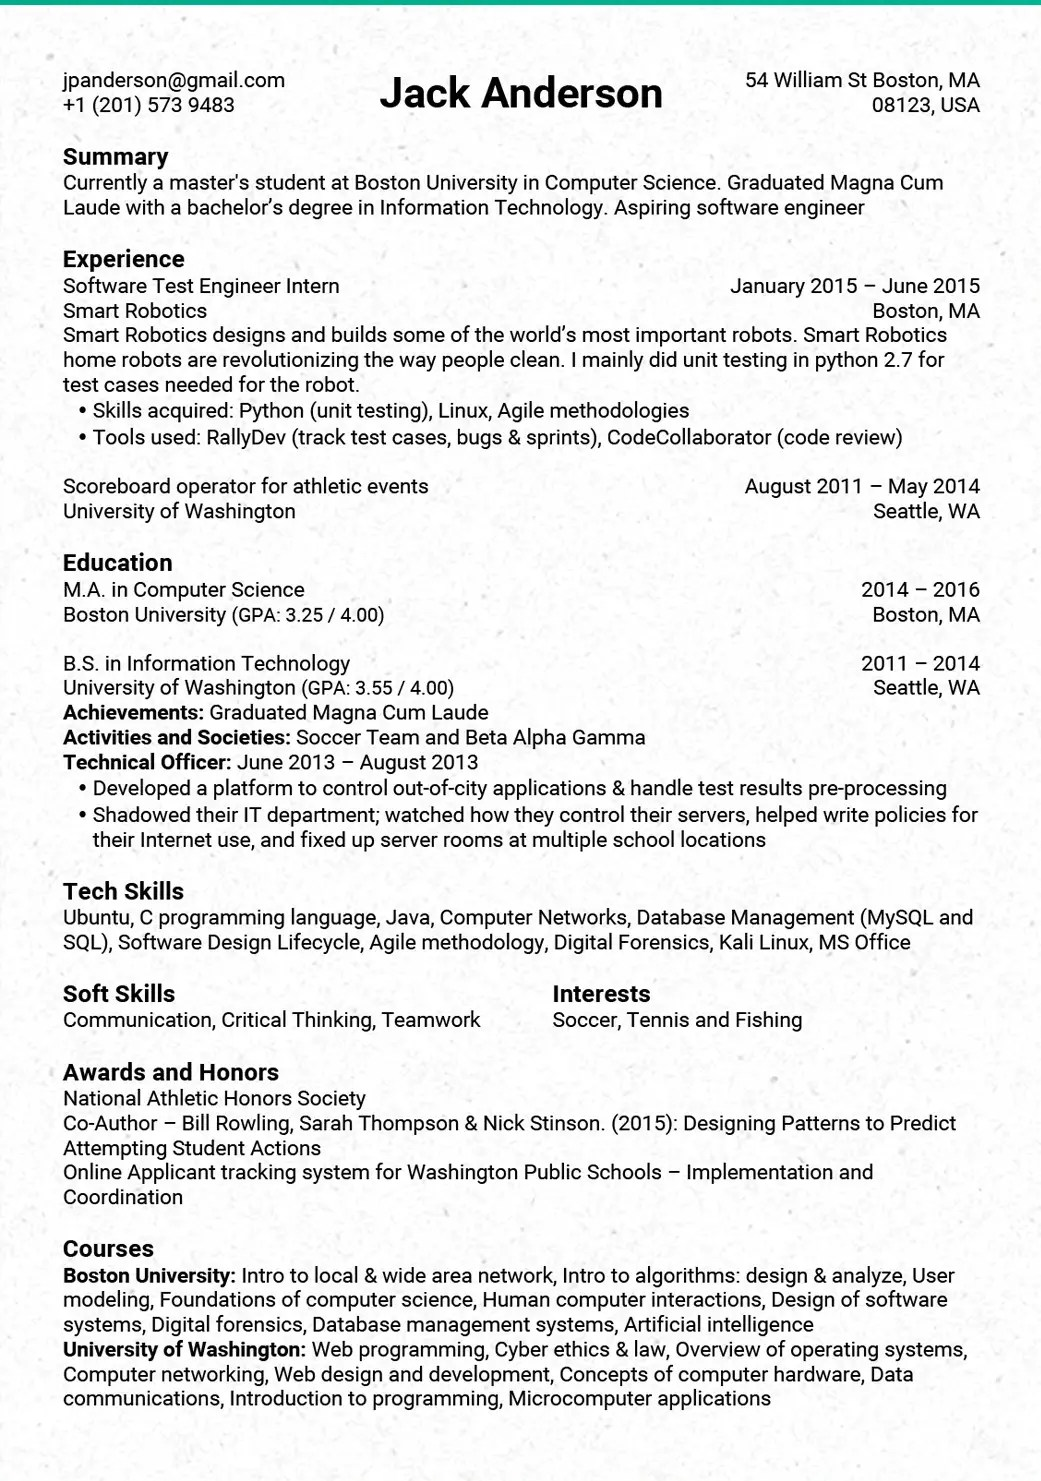 skills to mention in resume - zrom